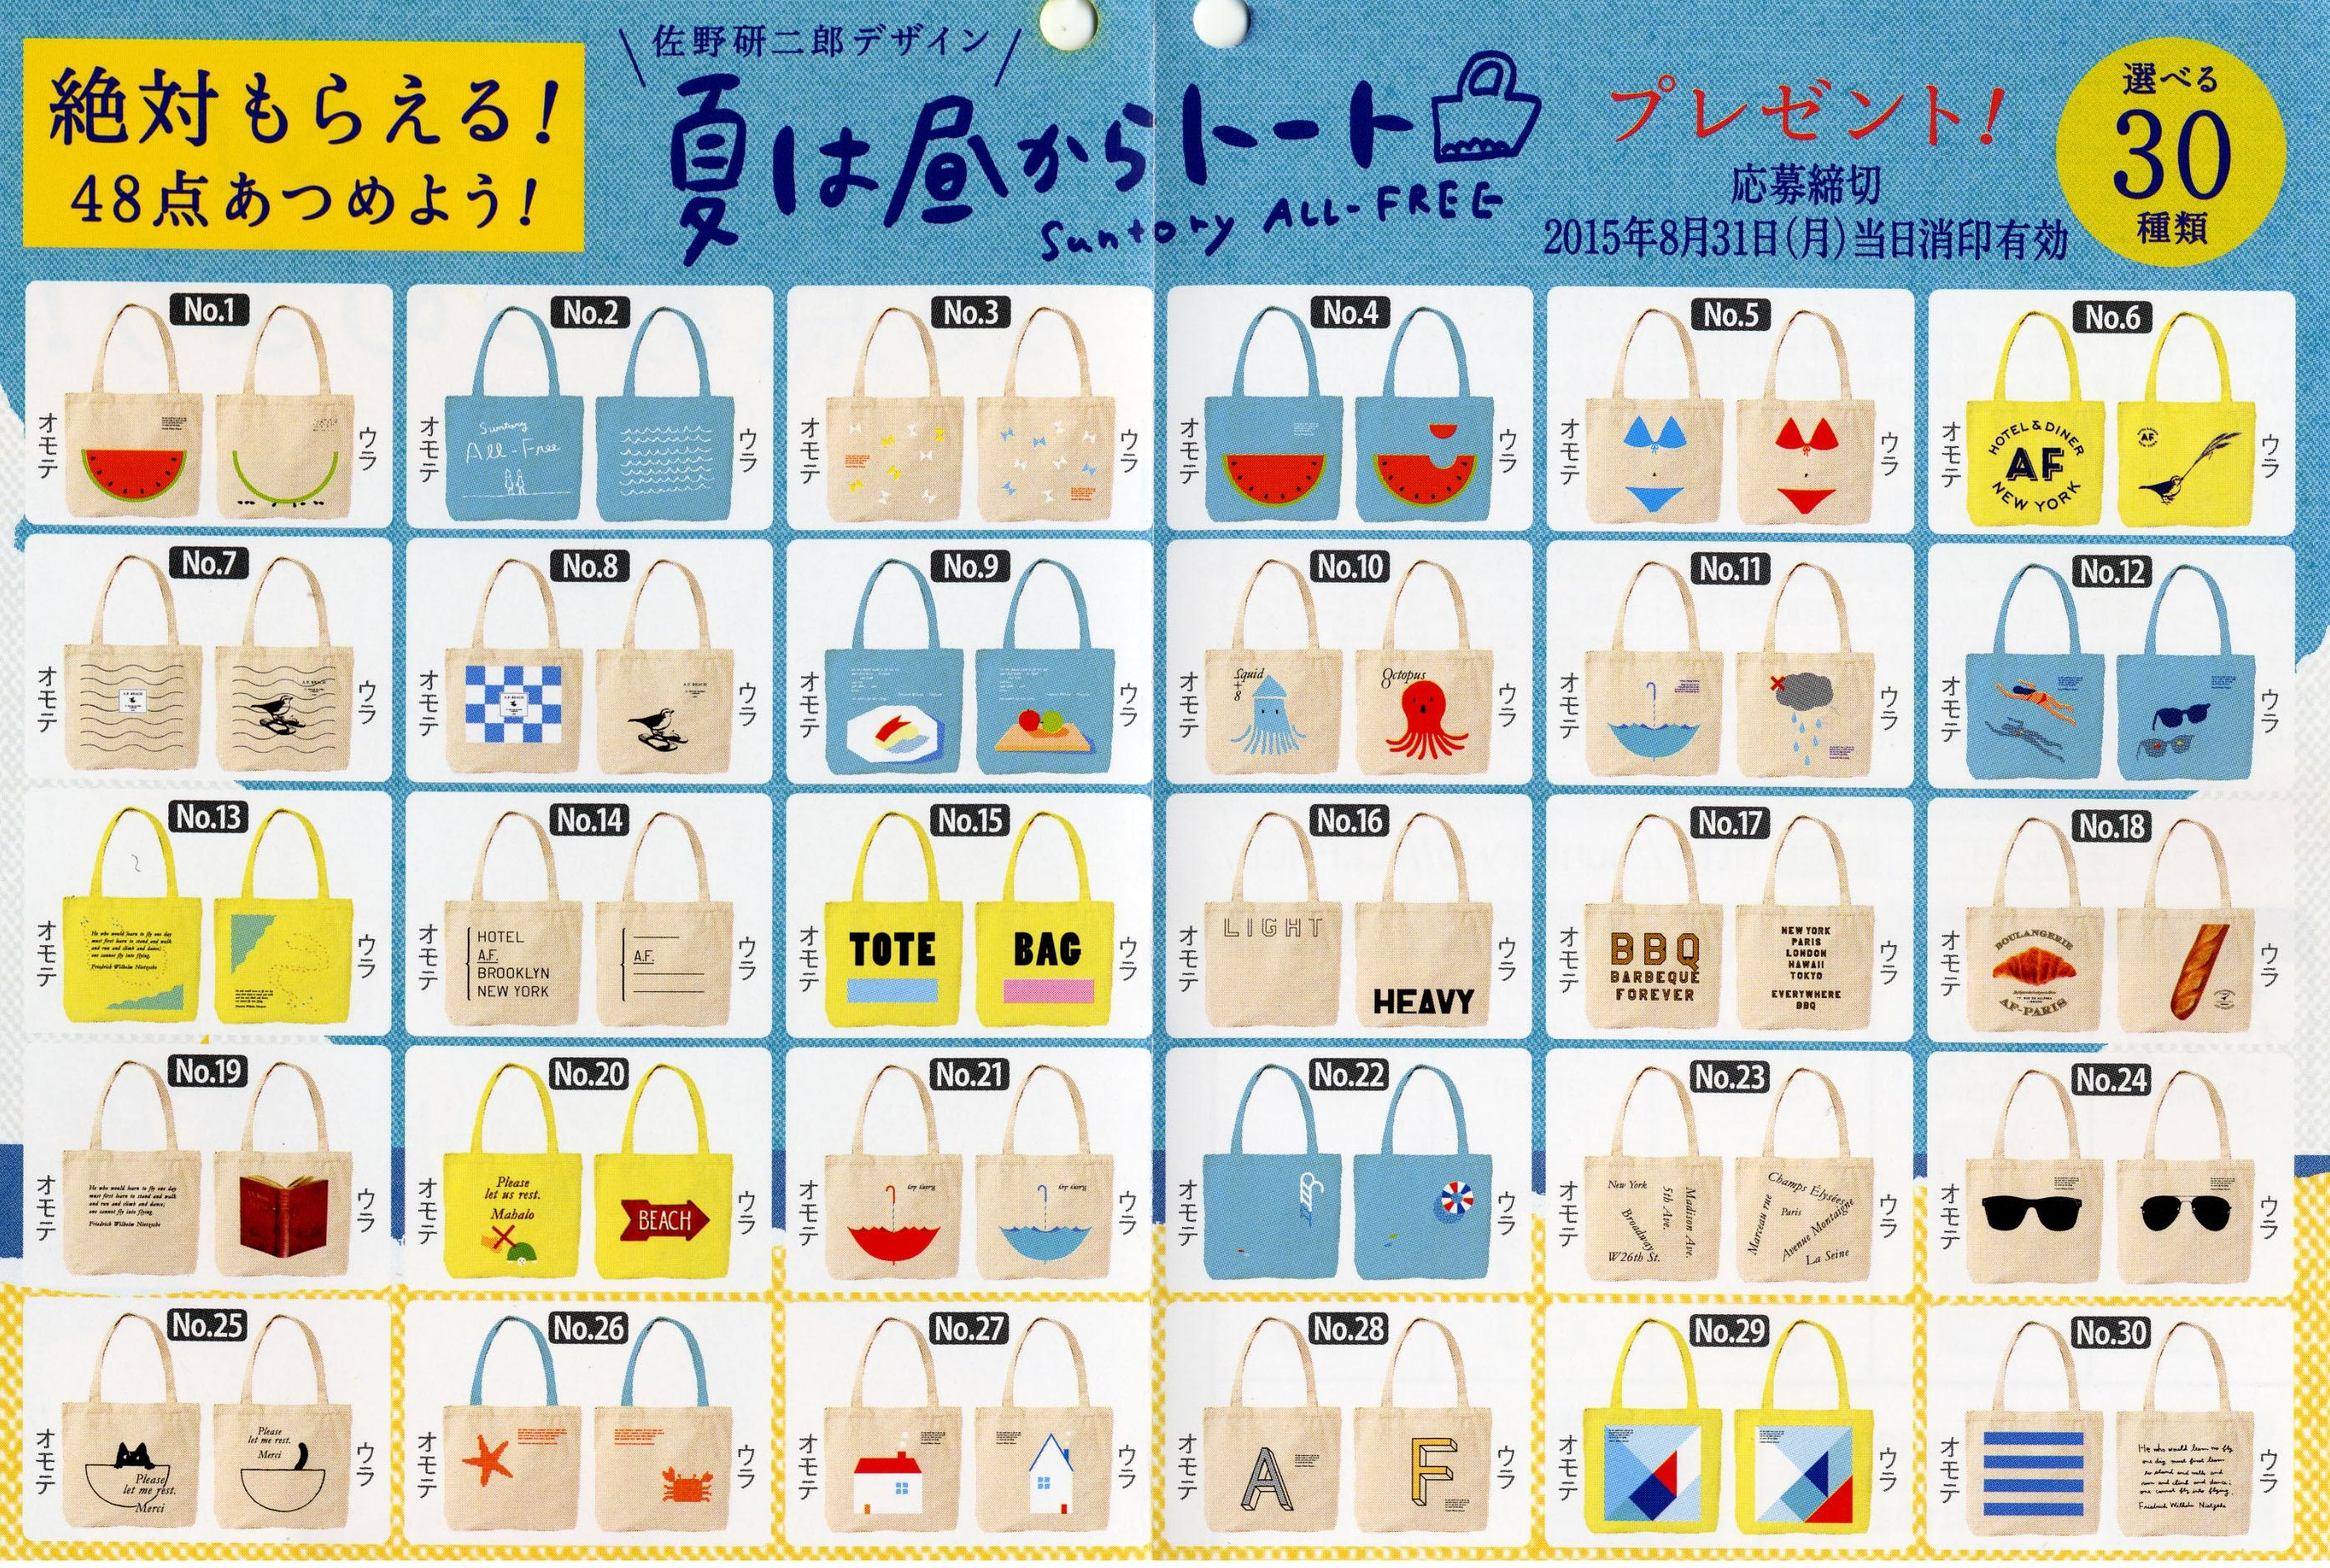 Suntory Beer Ltd.'s sales promotion poster shows 30 kinds of tote bags designed by Kenjiro Sano. Many Internet users claim that eight of the designs, including No. 18 and No. 20, were copied from somewhere on the web. | SUNTORY BEER LTD / KYODO